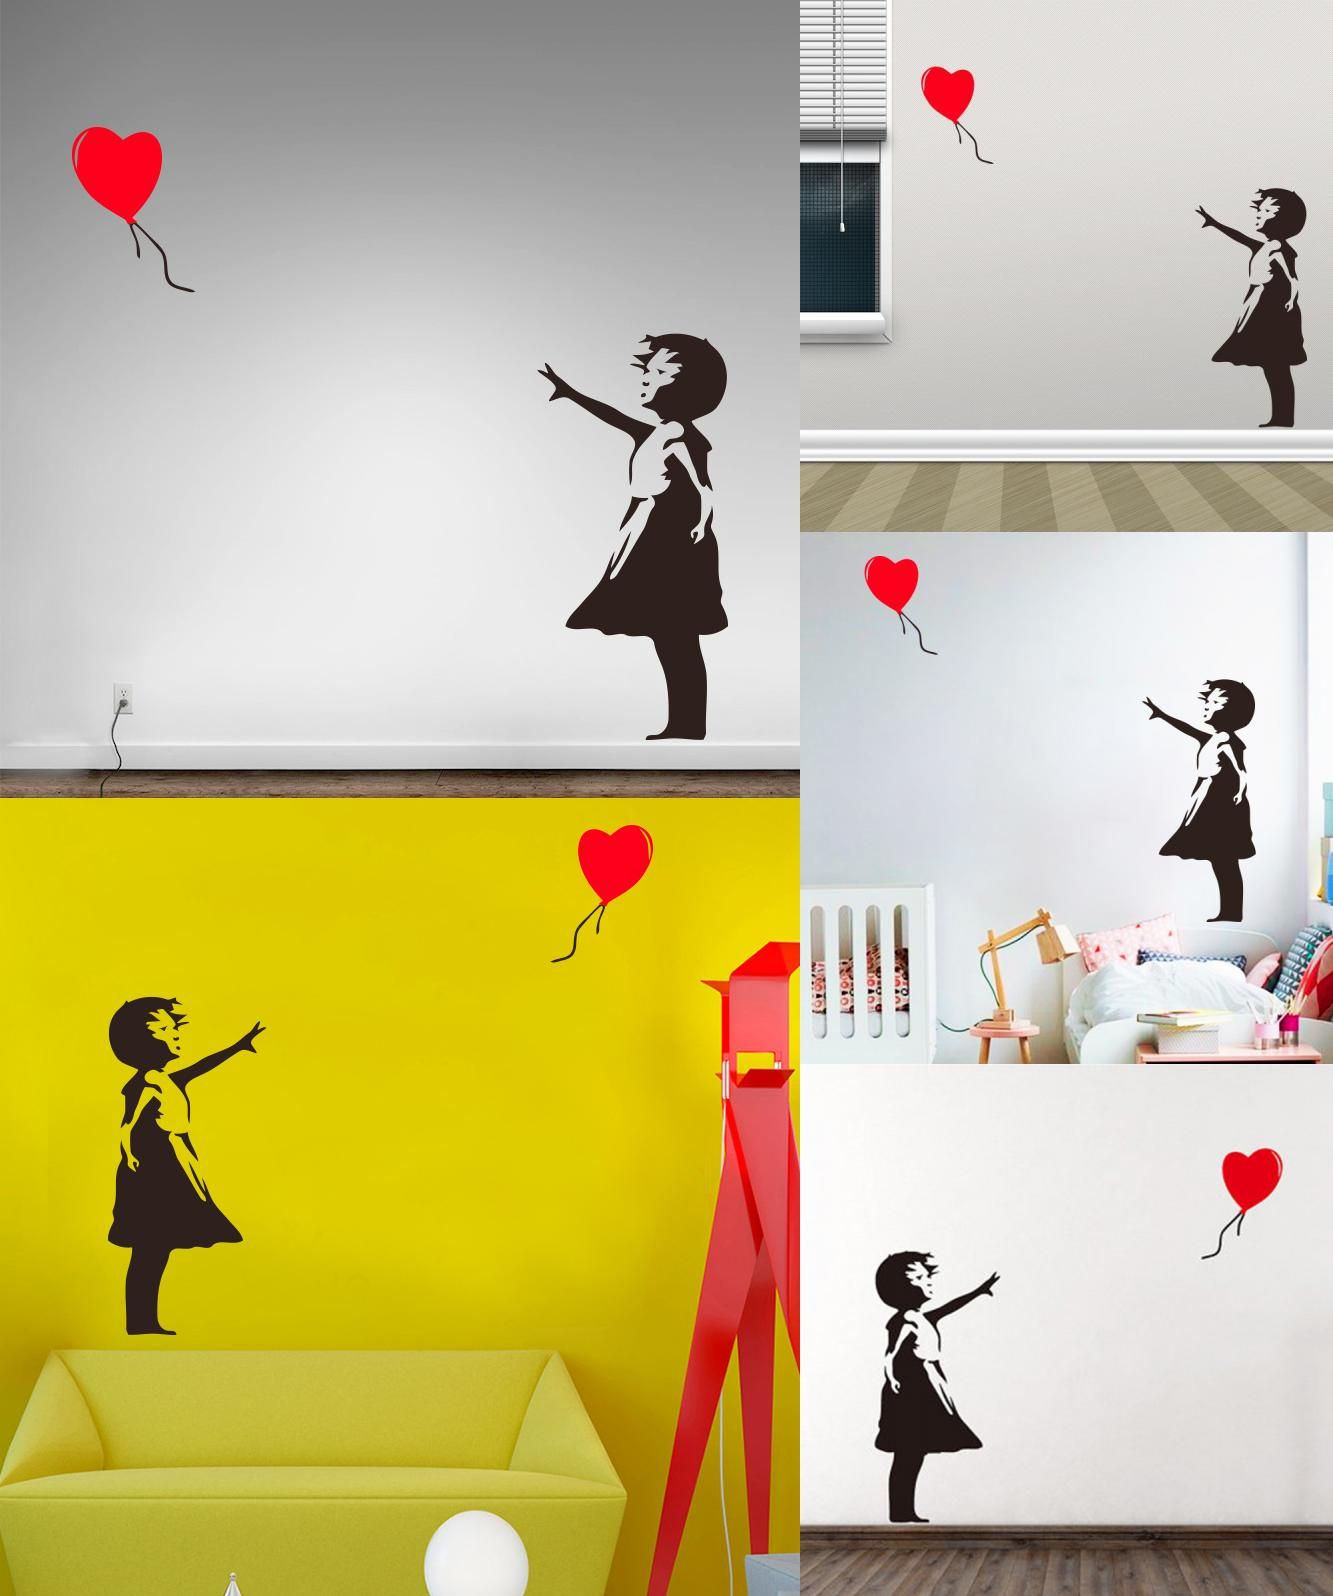 Visit to Buy] Banksy Vinyl Wall Sticker Home Decor Girl with Heart ...